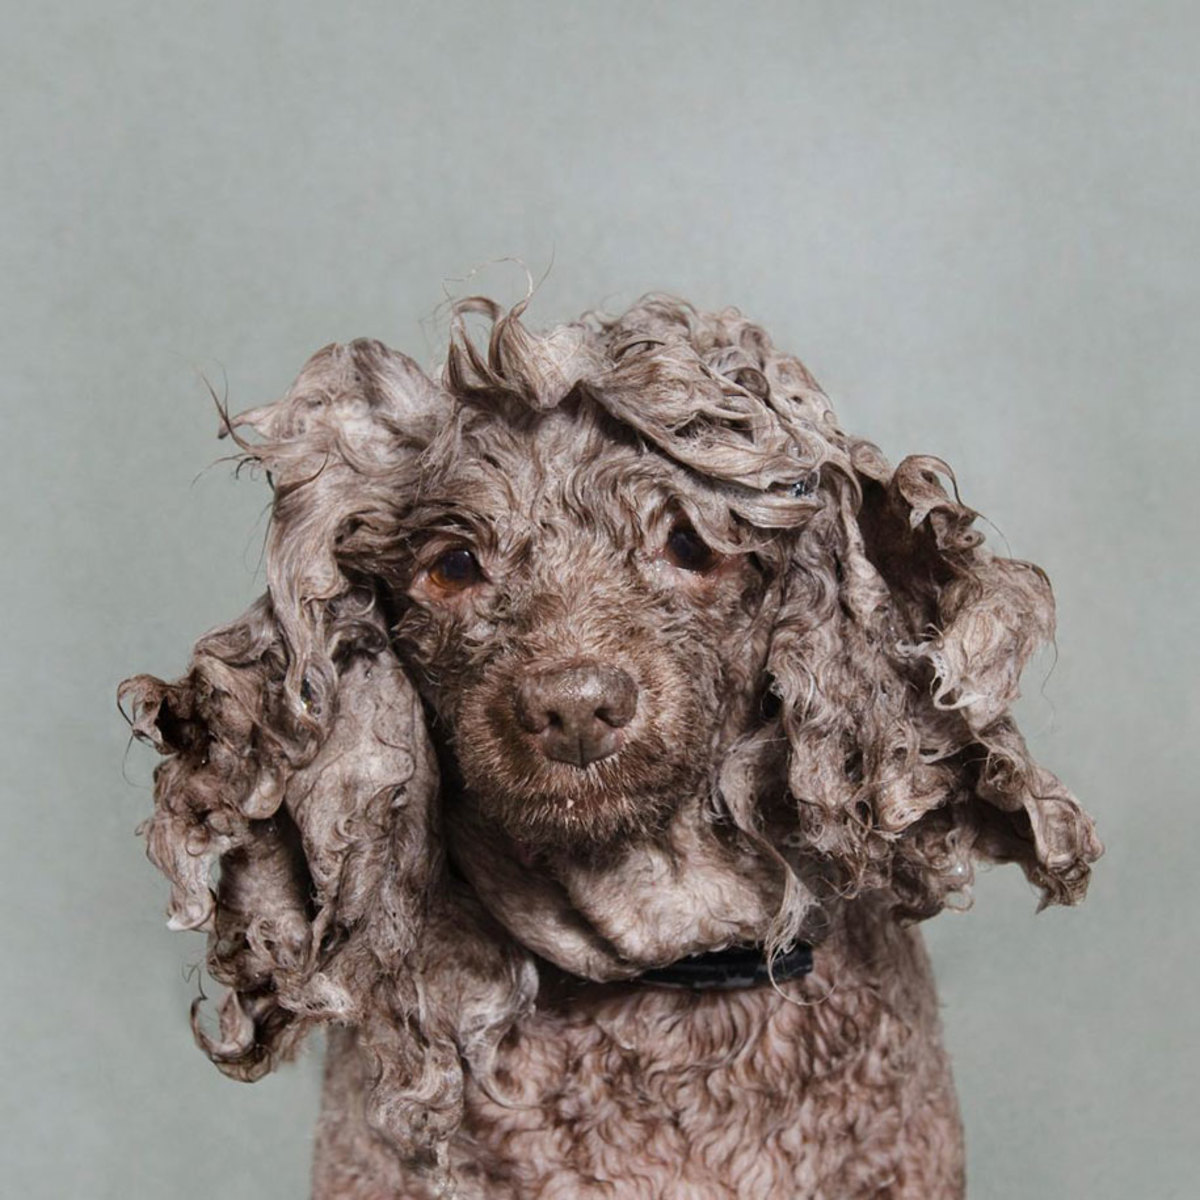 wet-dogs-striking-paws-12